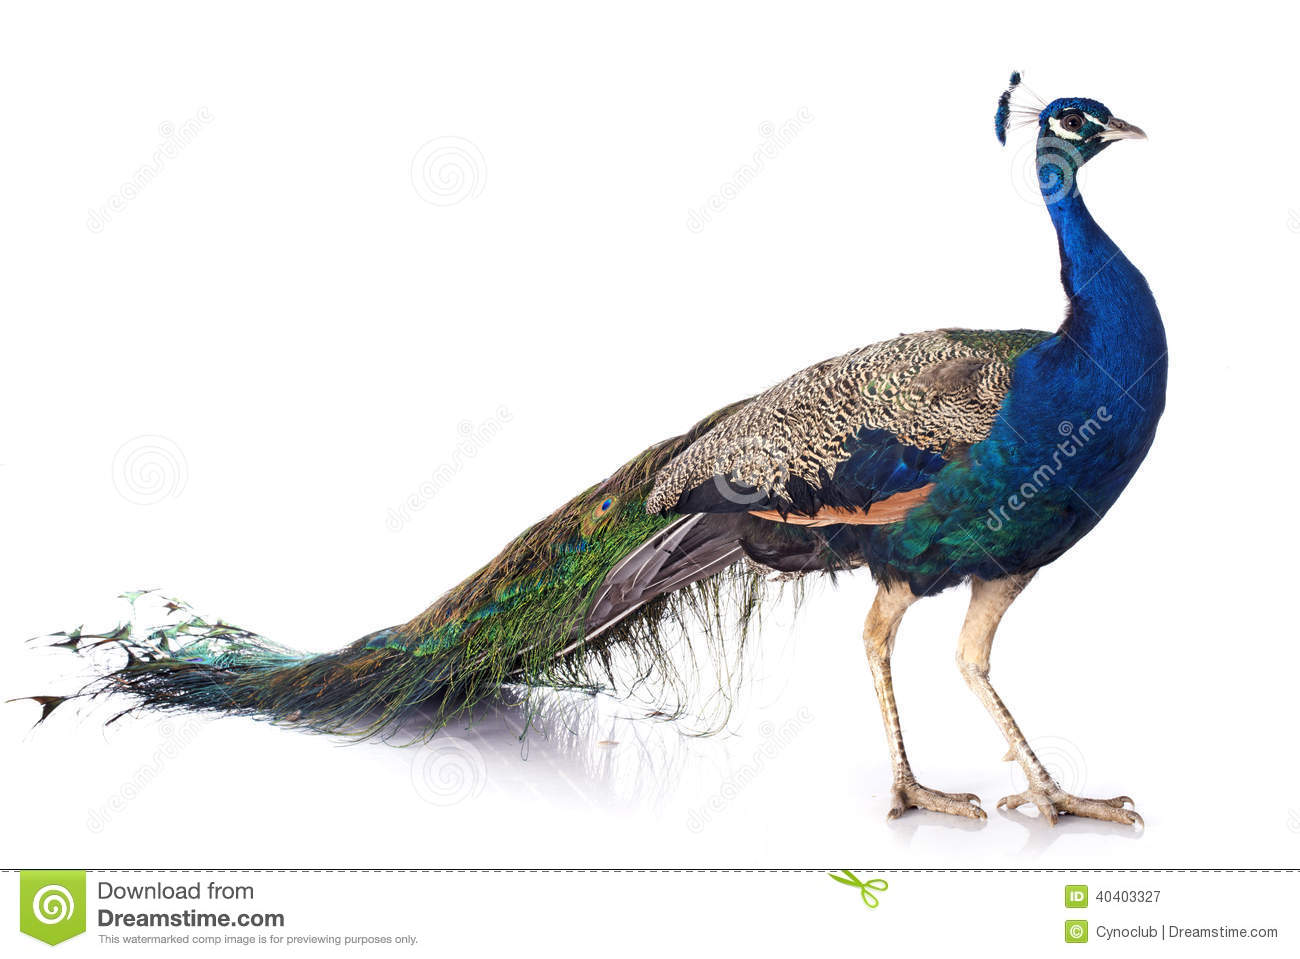 Male peacock in front of white background.